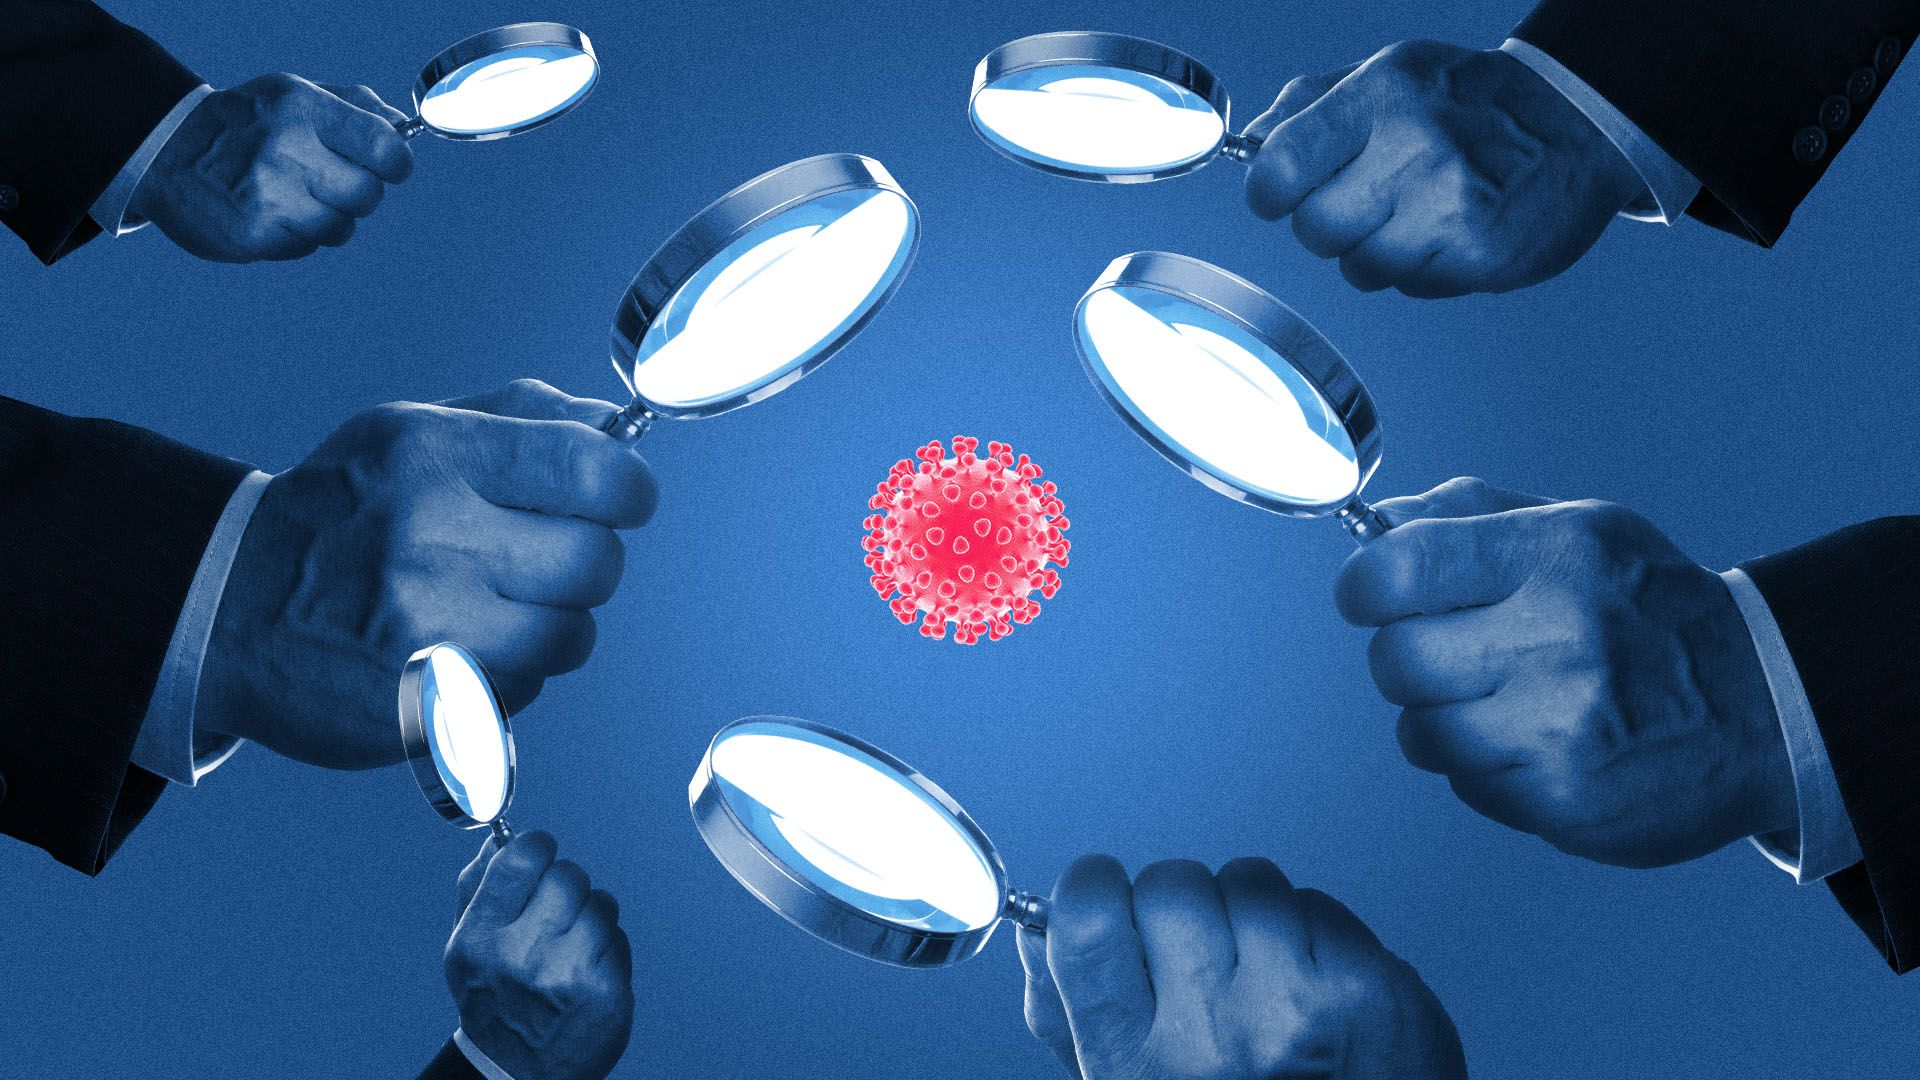 Illustration of a virus surrounded by hands with magnifying glasses